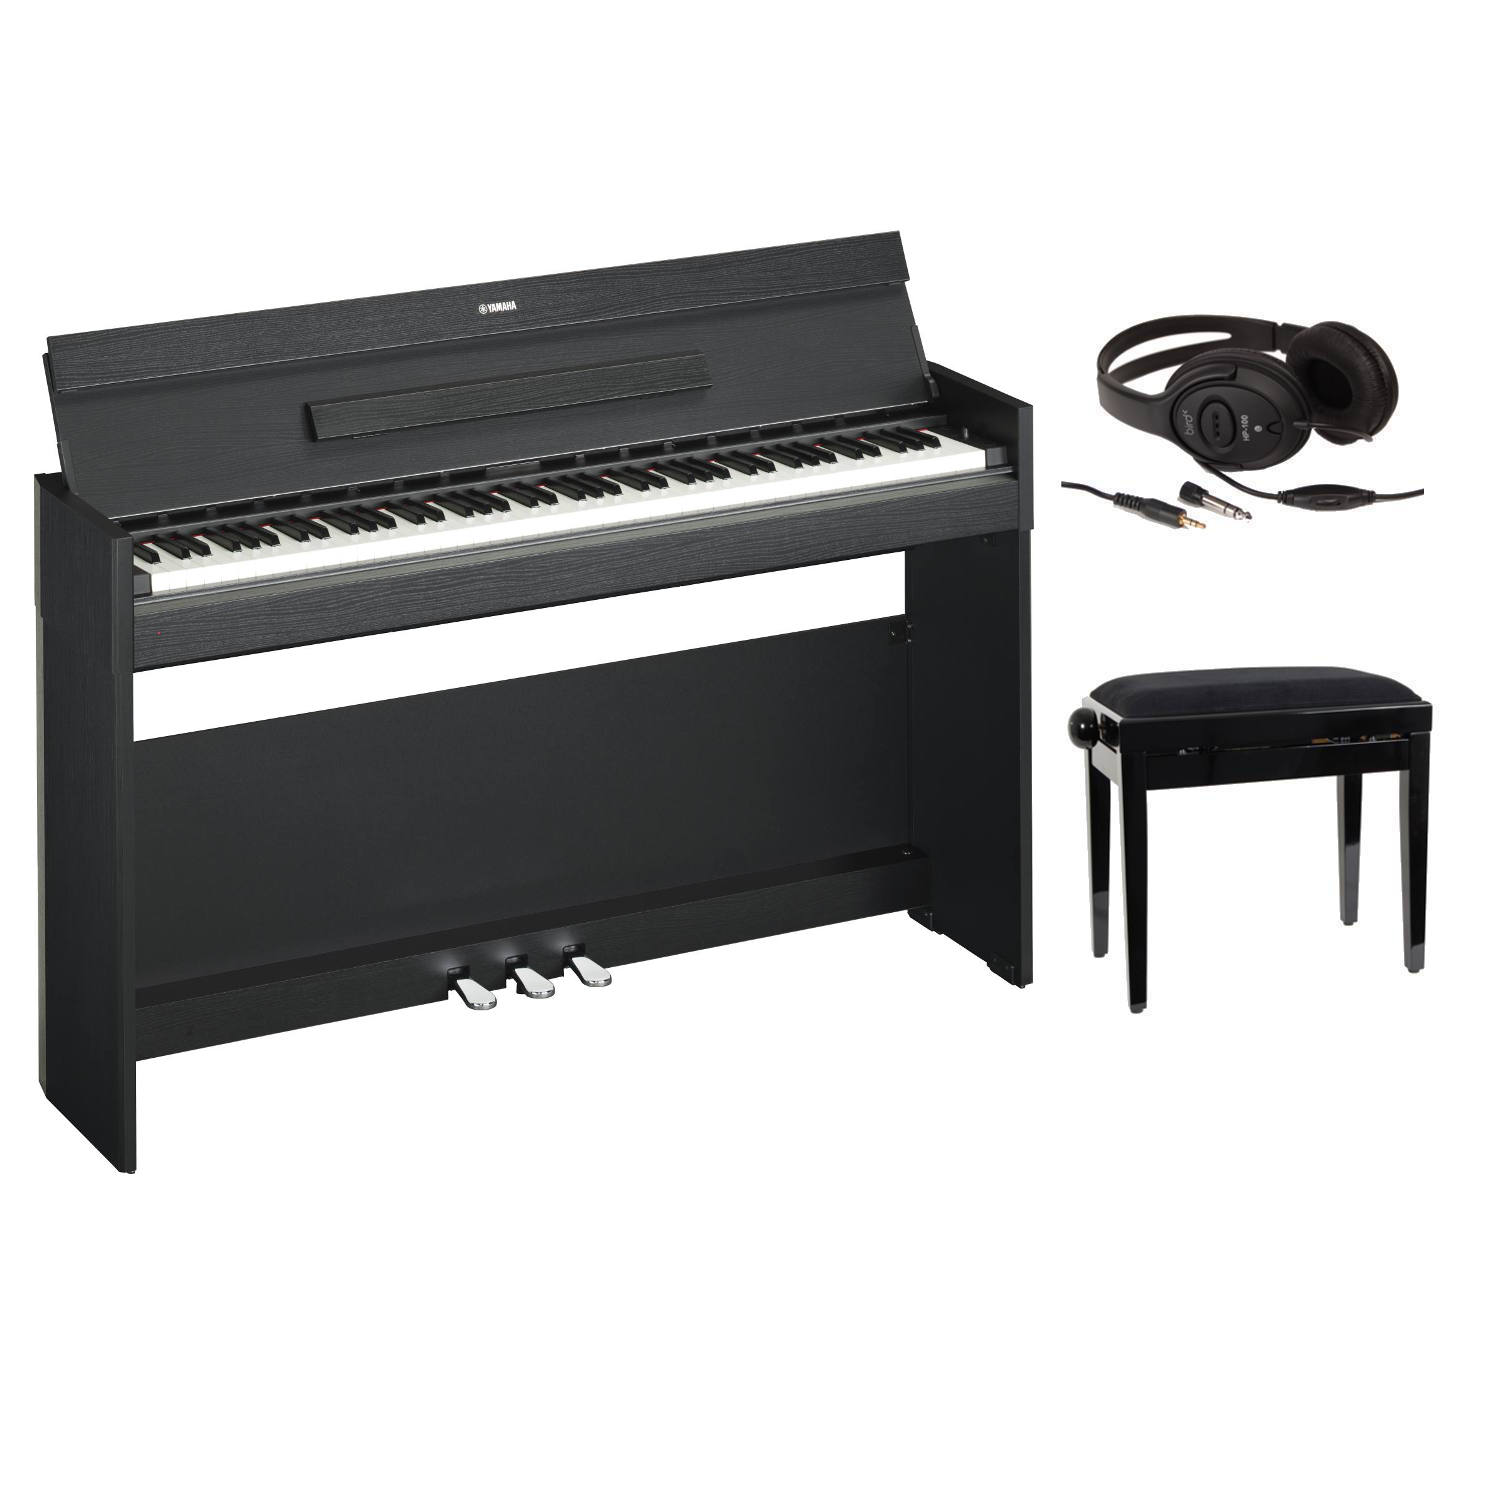 yamaha full pack ydp s52 blanc piano buy online free. Black Bedroom Furniture Sets. Home Design Ideas